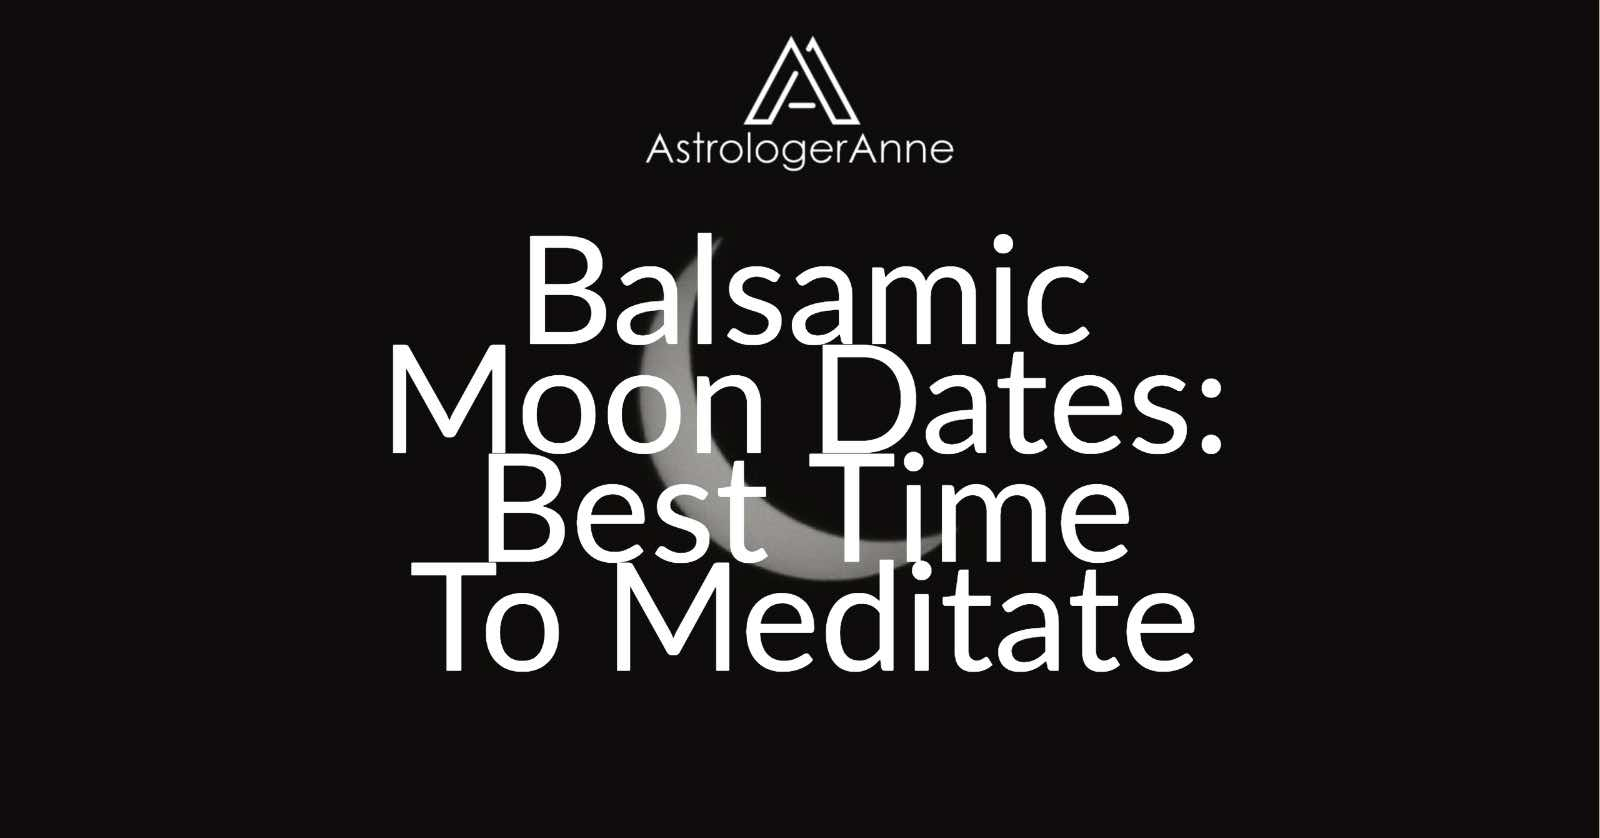 Balsamic Moon phase dates